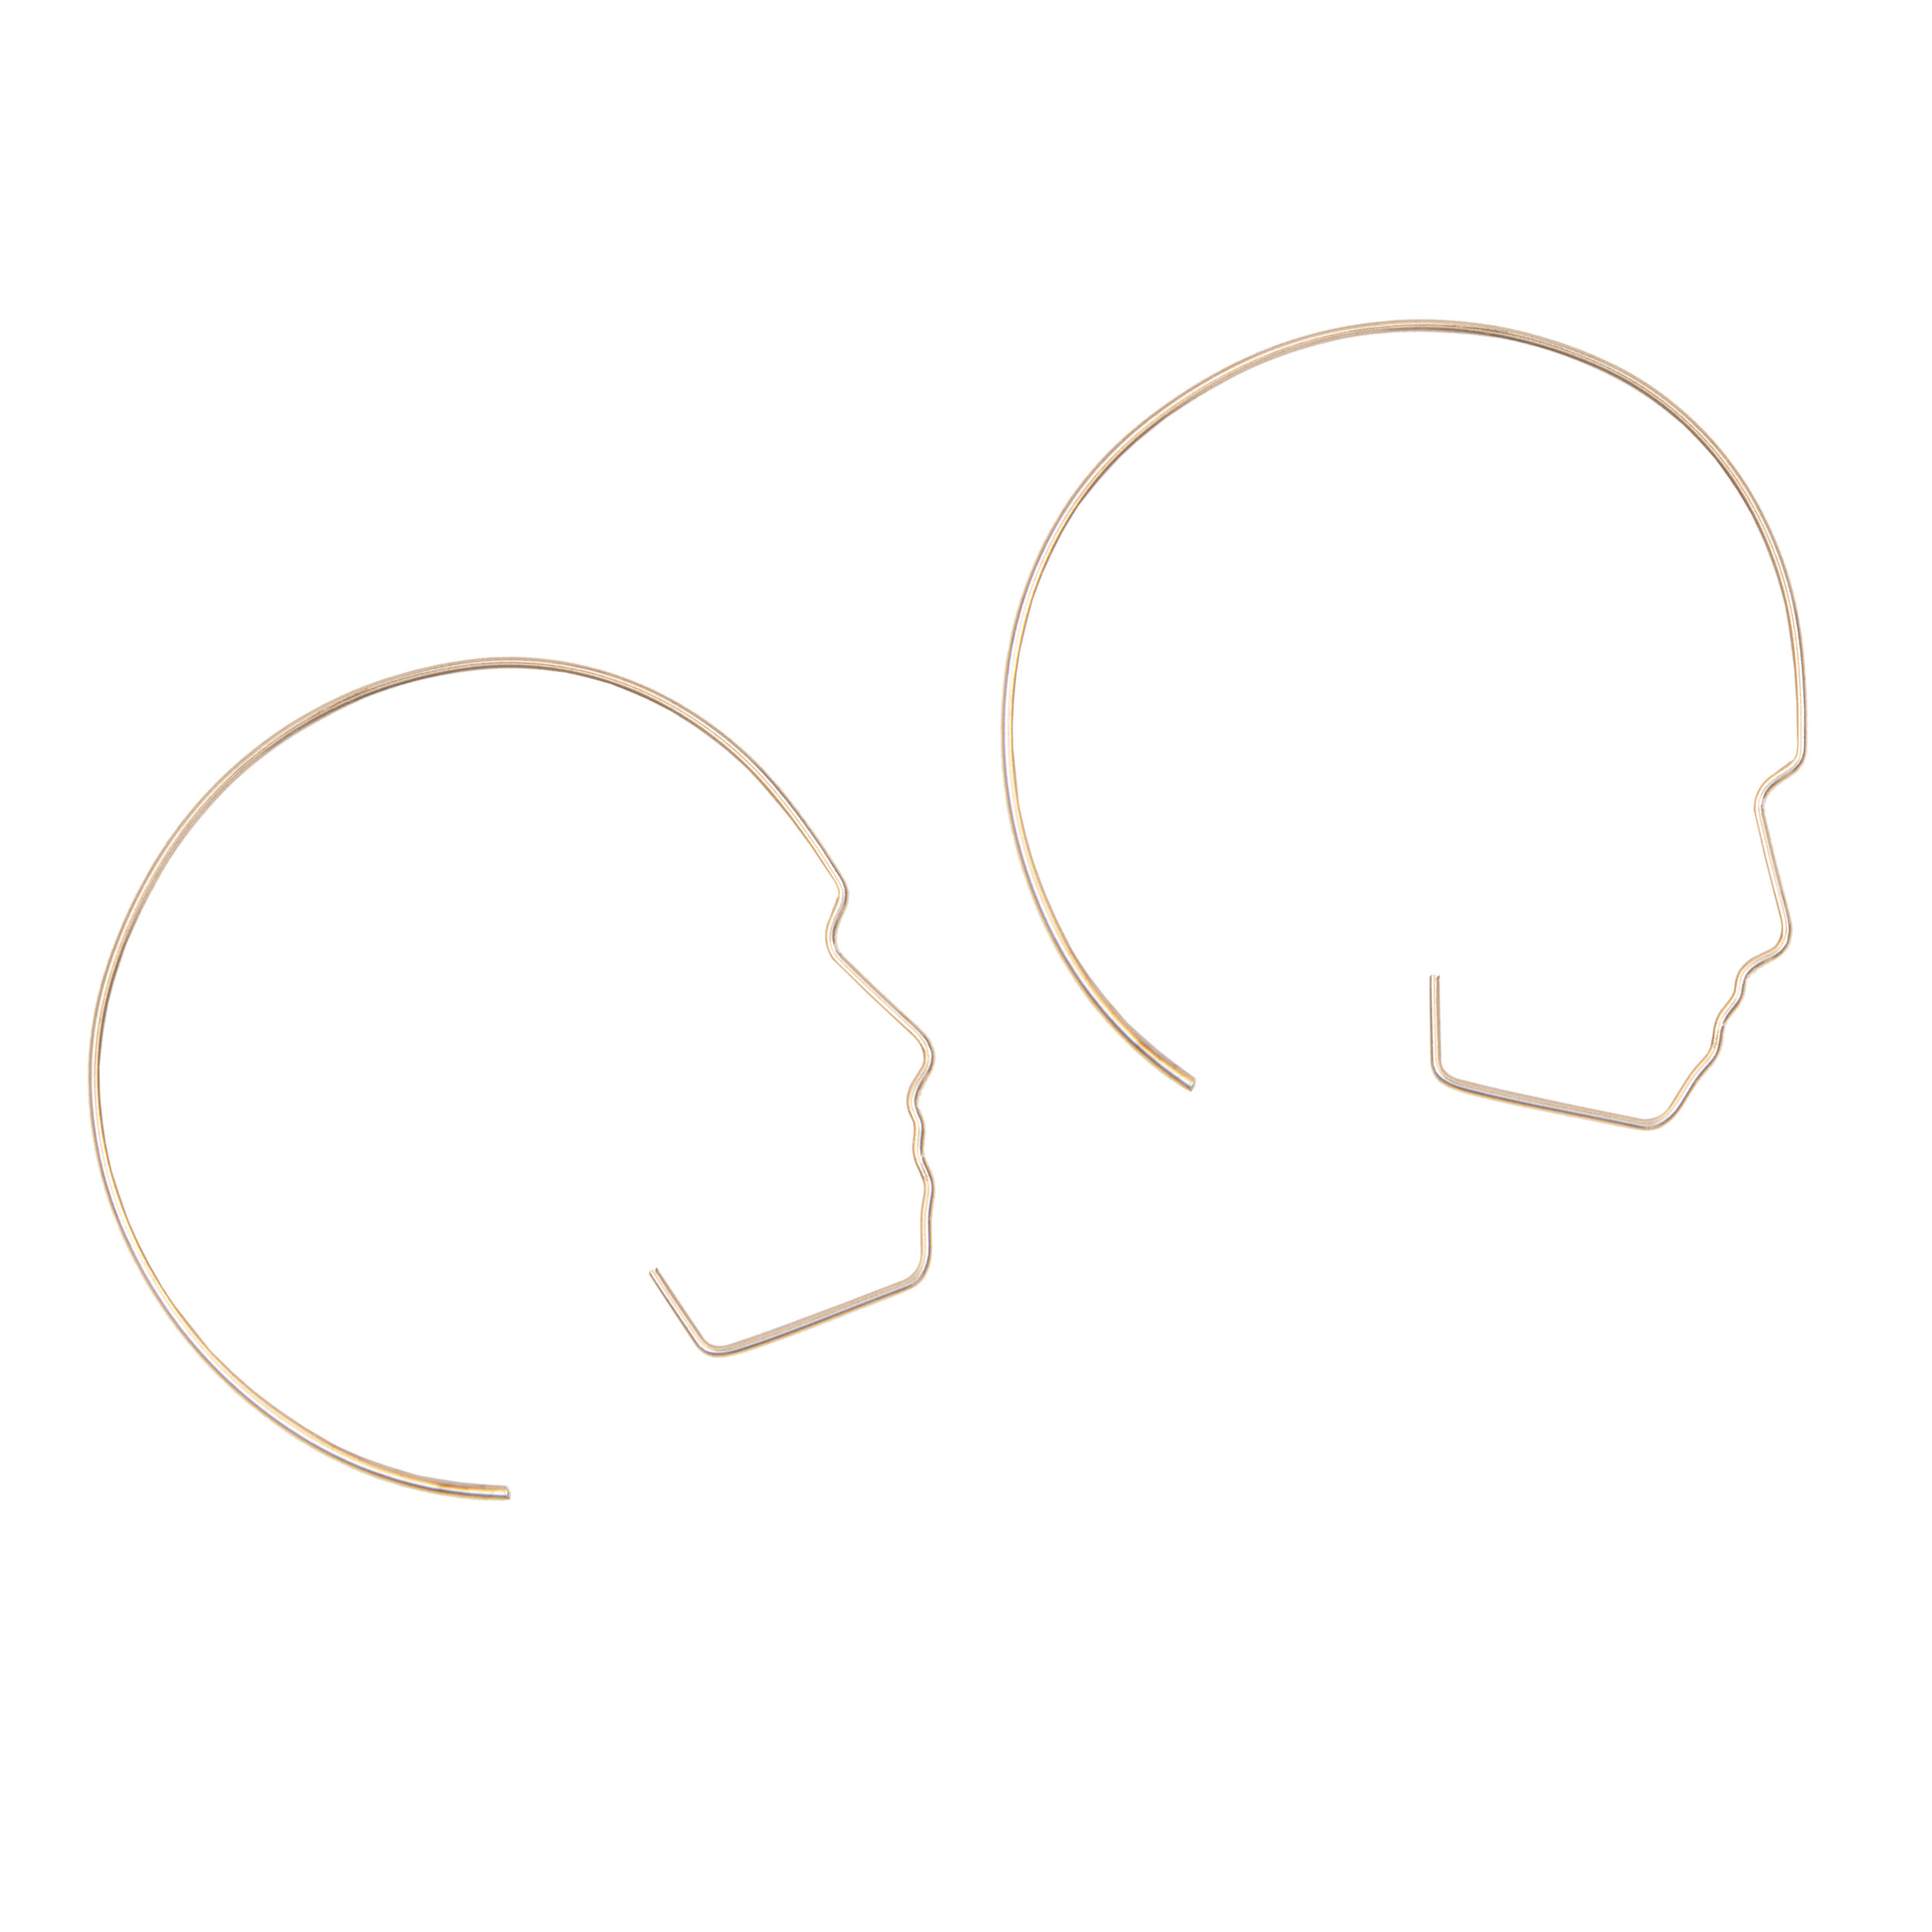 3. Wire Face Earrings - by A Weathered Penny.With influence of love, from line drawings of the face and body from Matisse. The Wire Faces Hoop Earrings are hand moulded in gold + silver plated alloy wire, these fun and unique earrings depict a side profile of a female face.